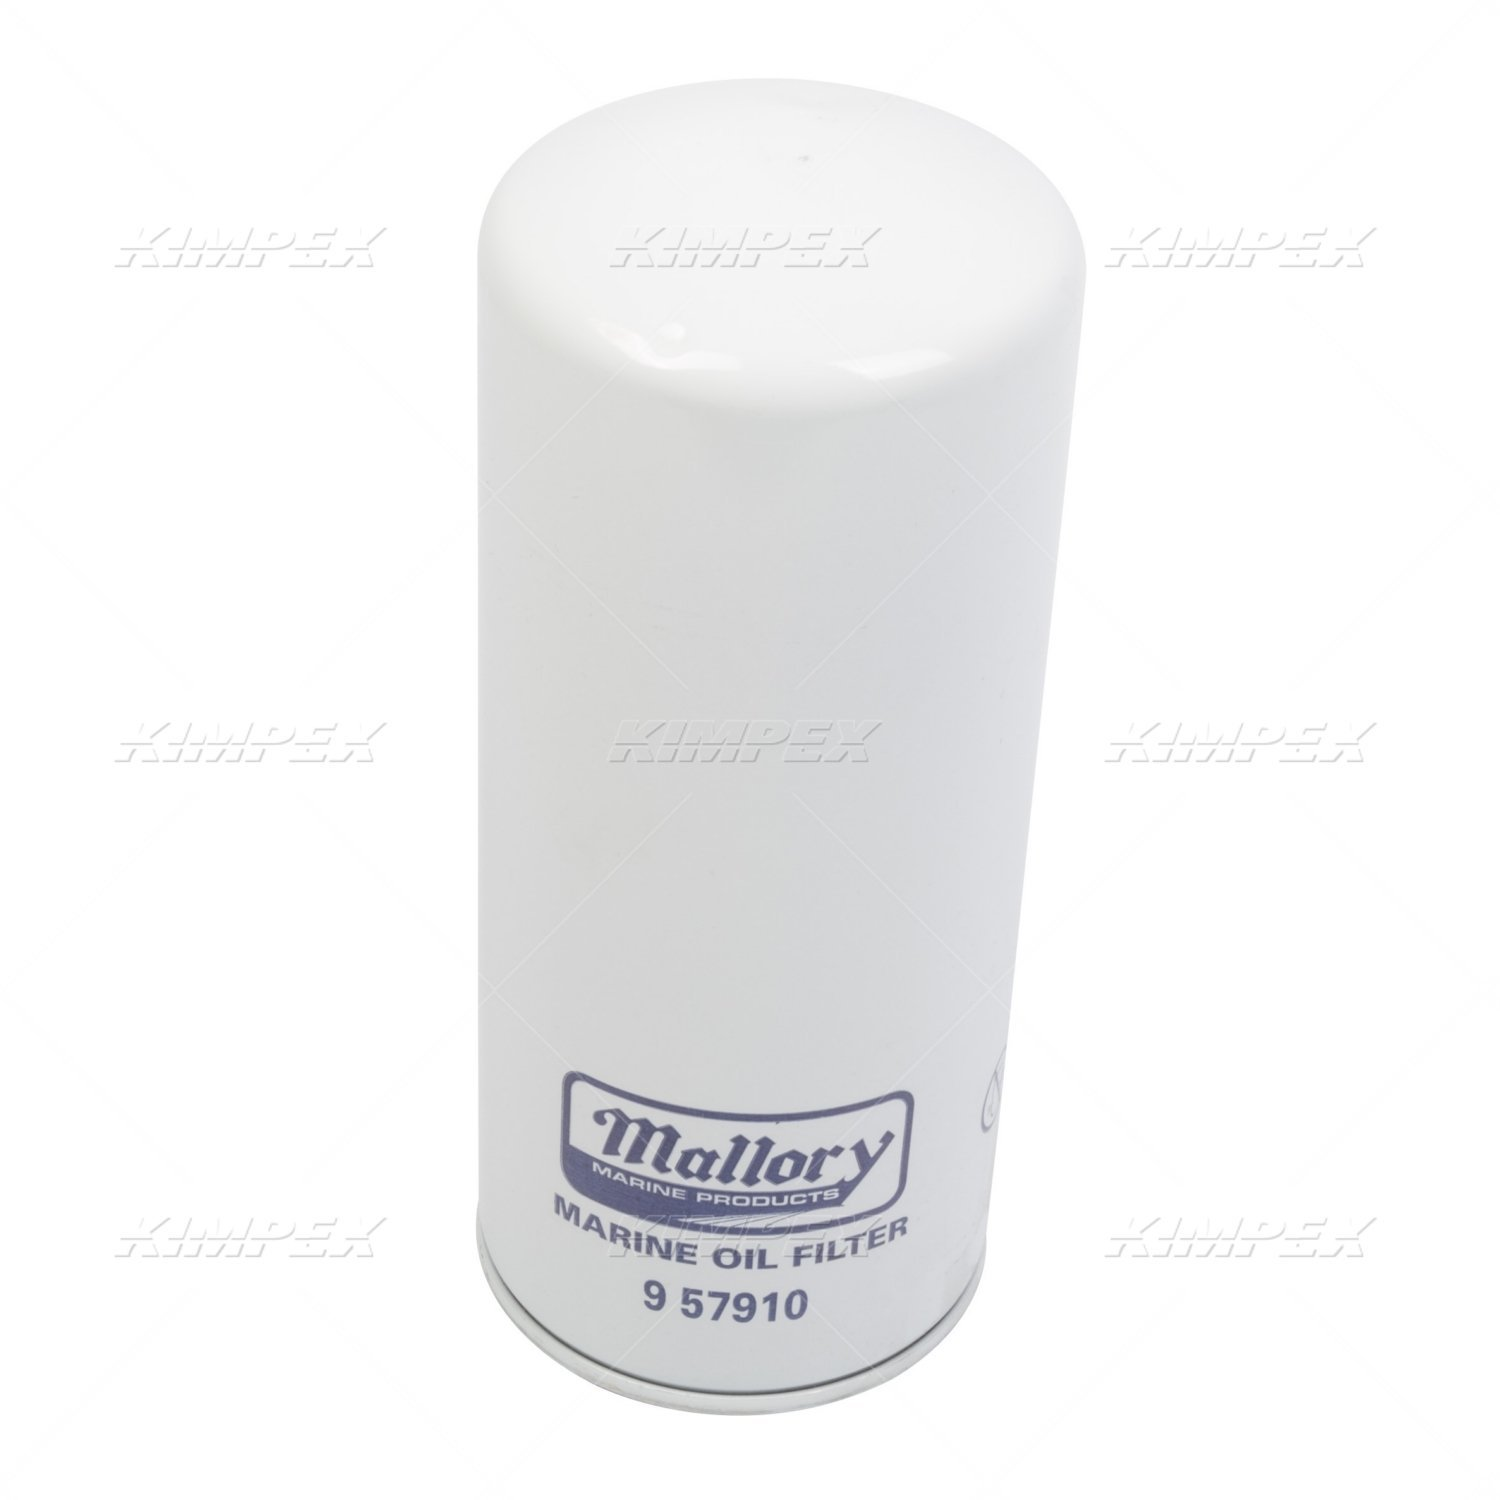 Cheap Fuel Filter 795210 For Volvo Find 1998 S70 Location Get Quotations 9 57910 Mallory